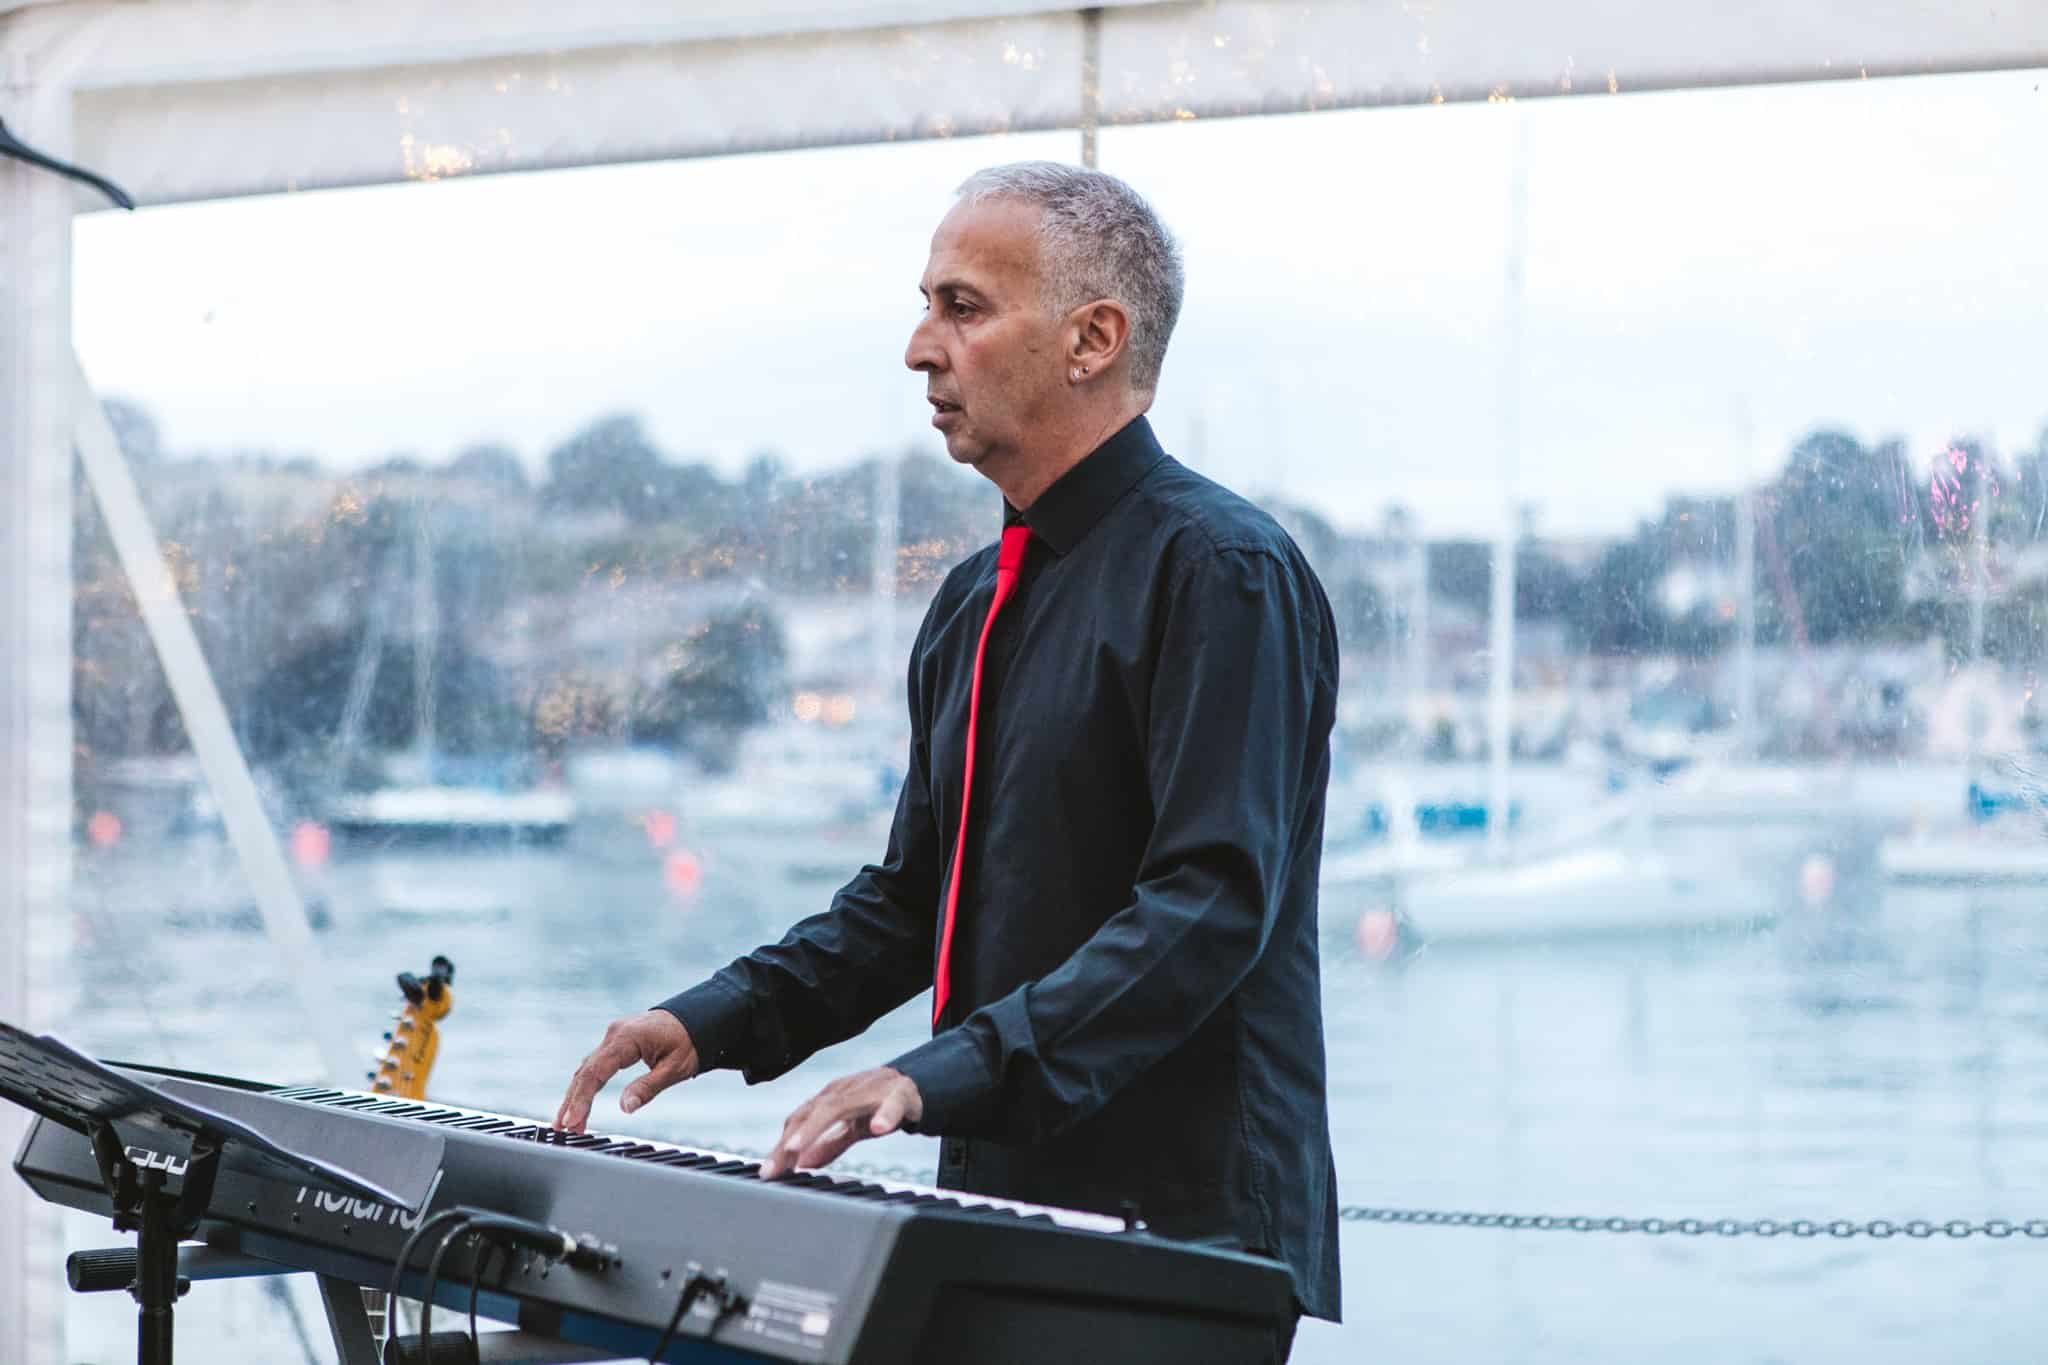 falmouth-week-at-the-working-boat-pub-live-music-events-falmouth-cornwall (37 of 114)